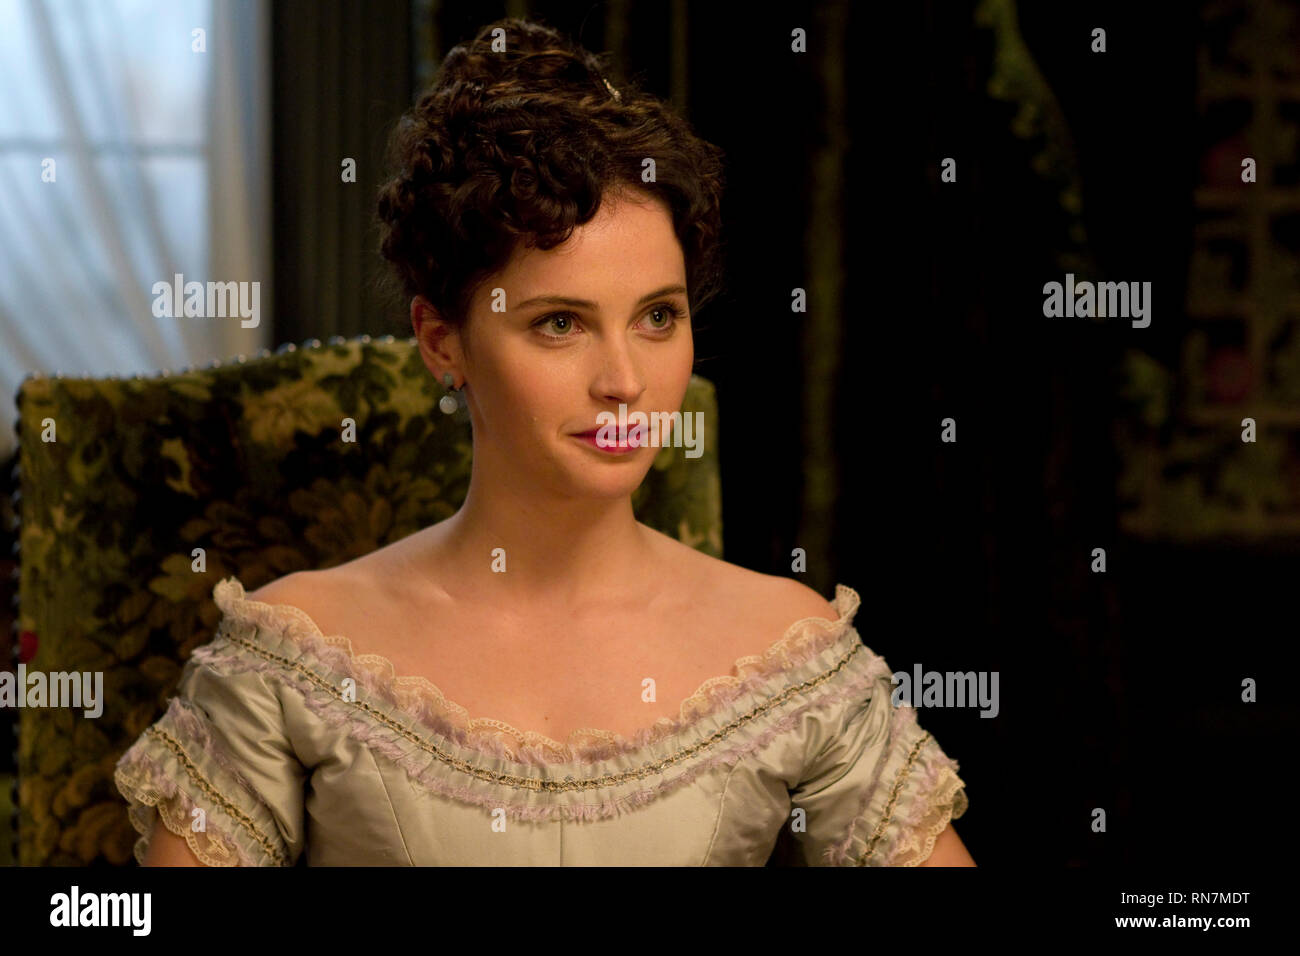 FELICITY JONES, HYSTERIA, 2011 - Stock Image